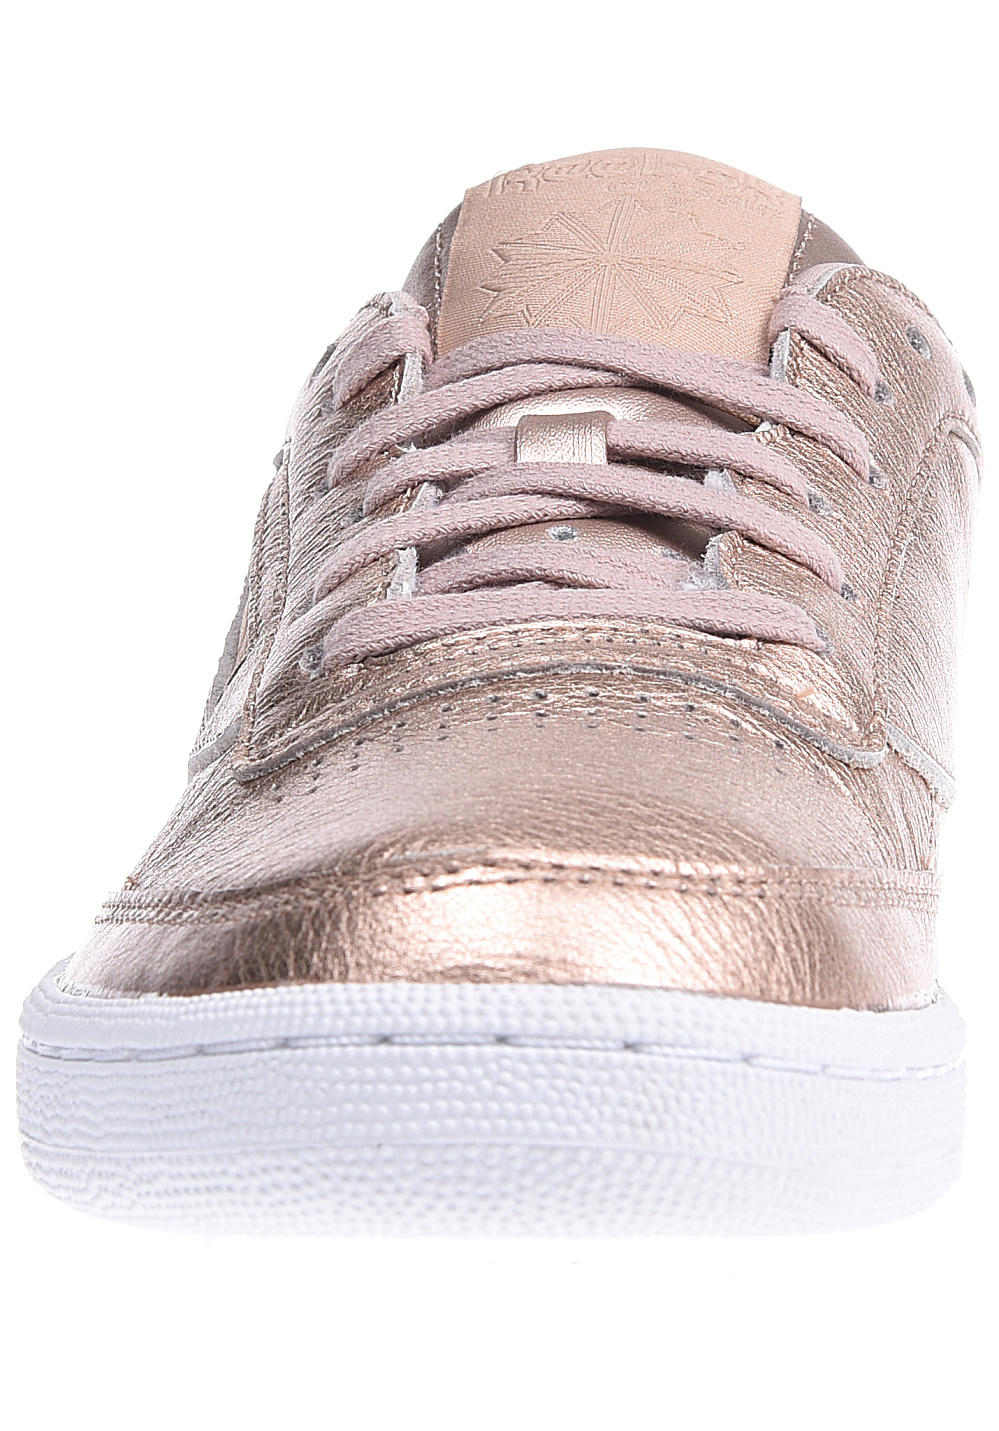 5891bad5738a3 Reebok Club C 85 Melted Metal - Sneakers for Women - Pink - Planet ...